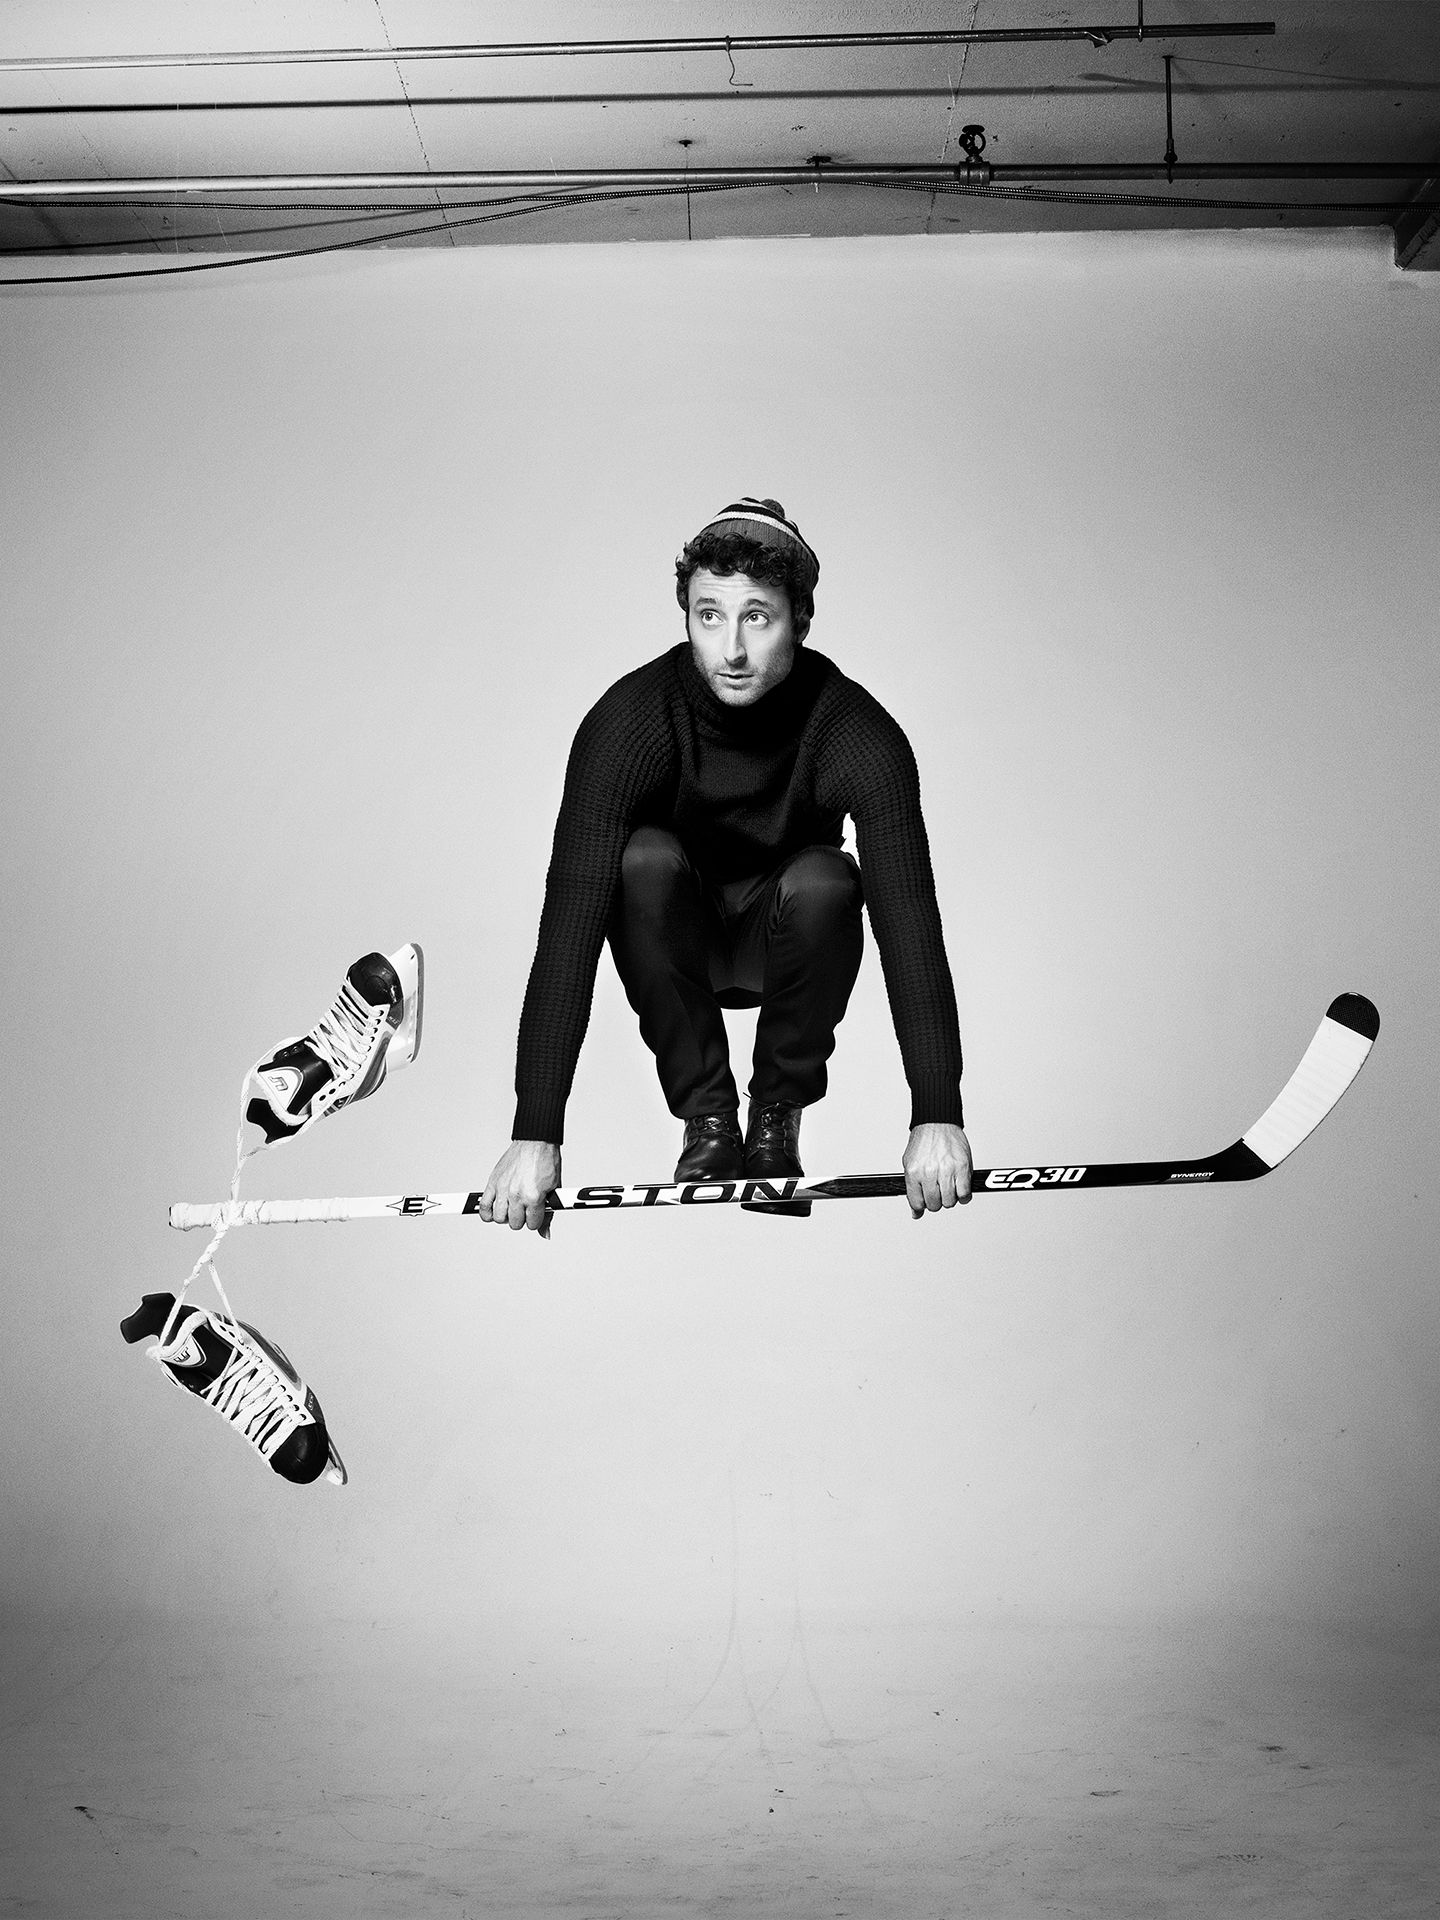 Louis-Jean Cormier photographed jumping in the air by Jocelyn Michel for JUMP personal series